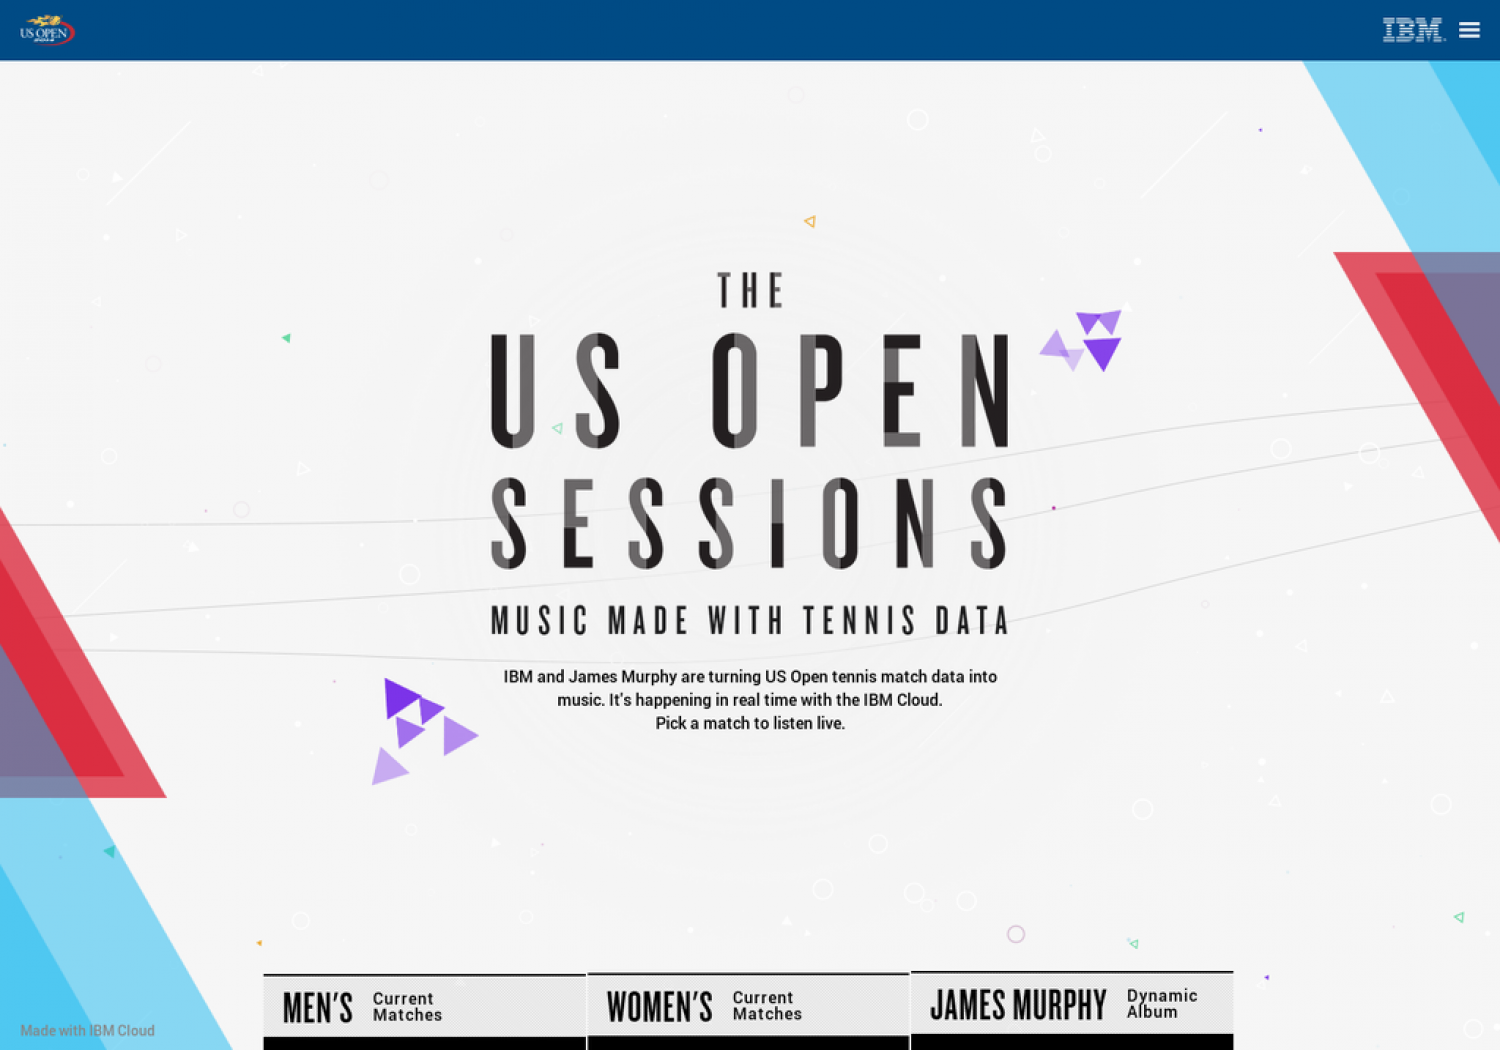 The US Open Sessions: Music Made With Tennis Data Infographic